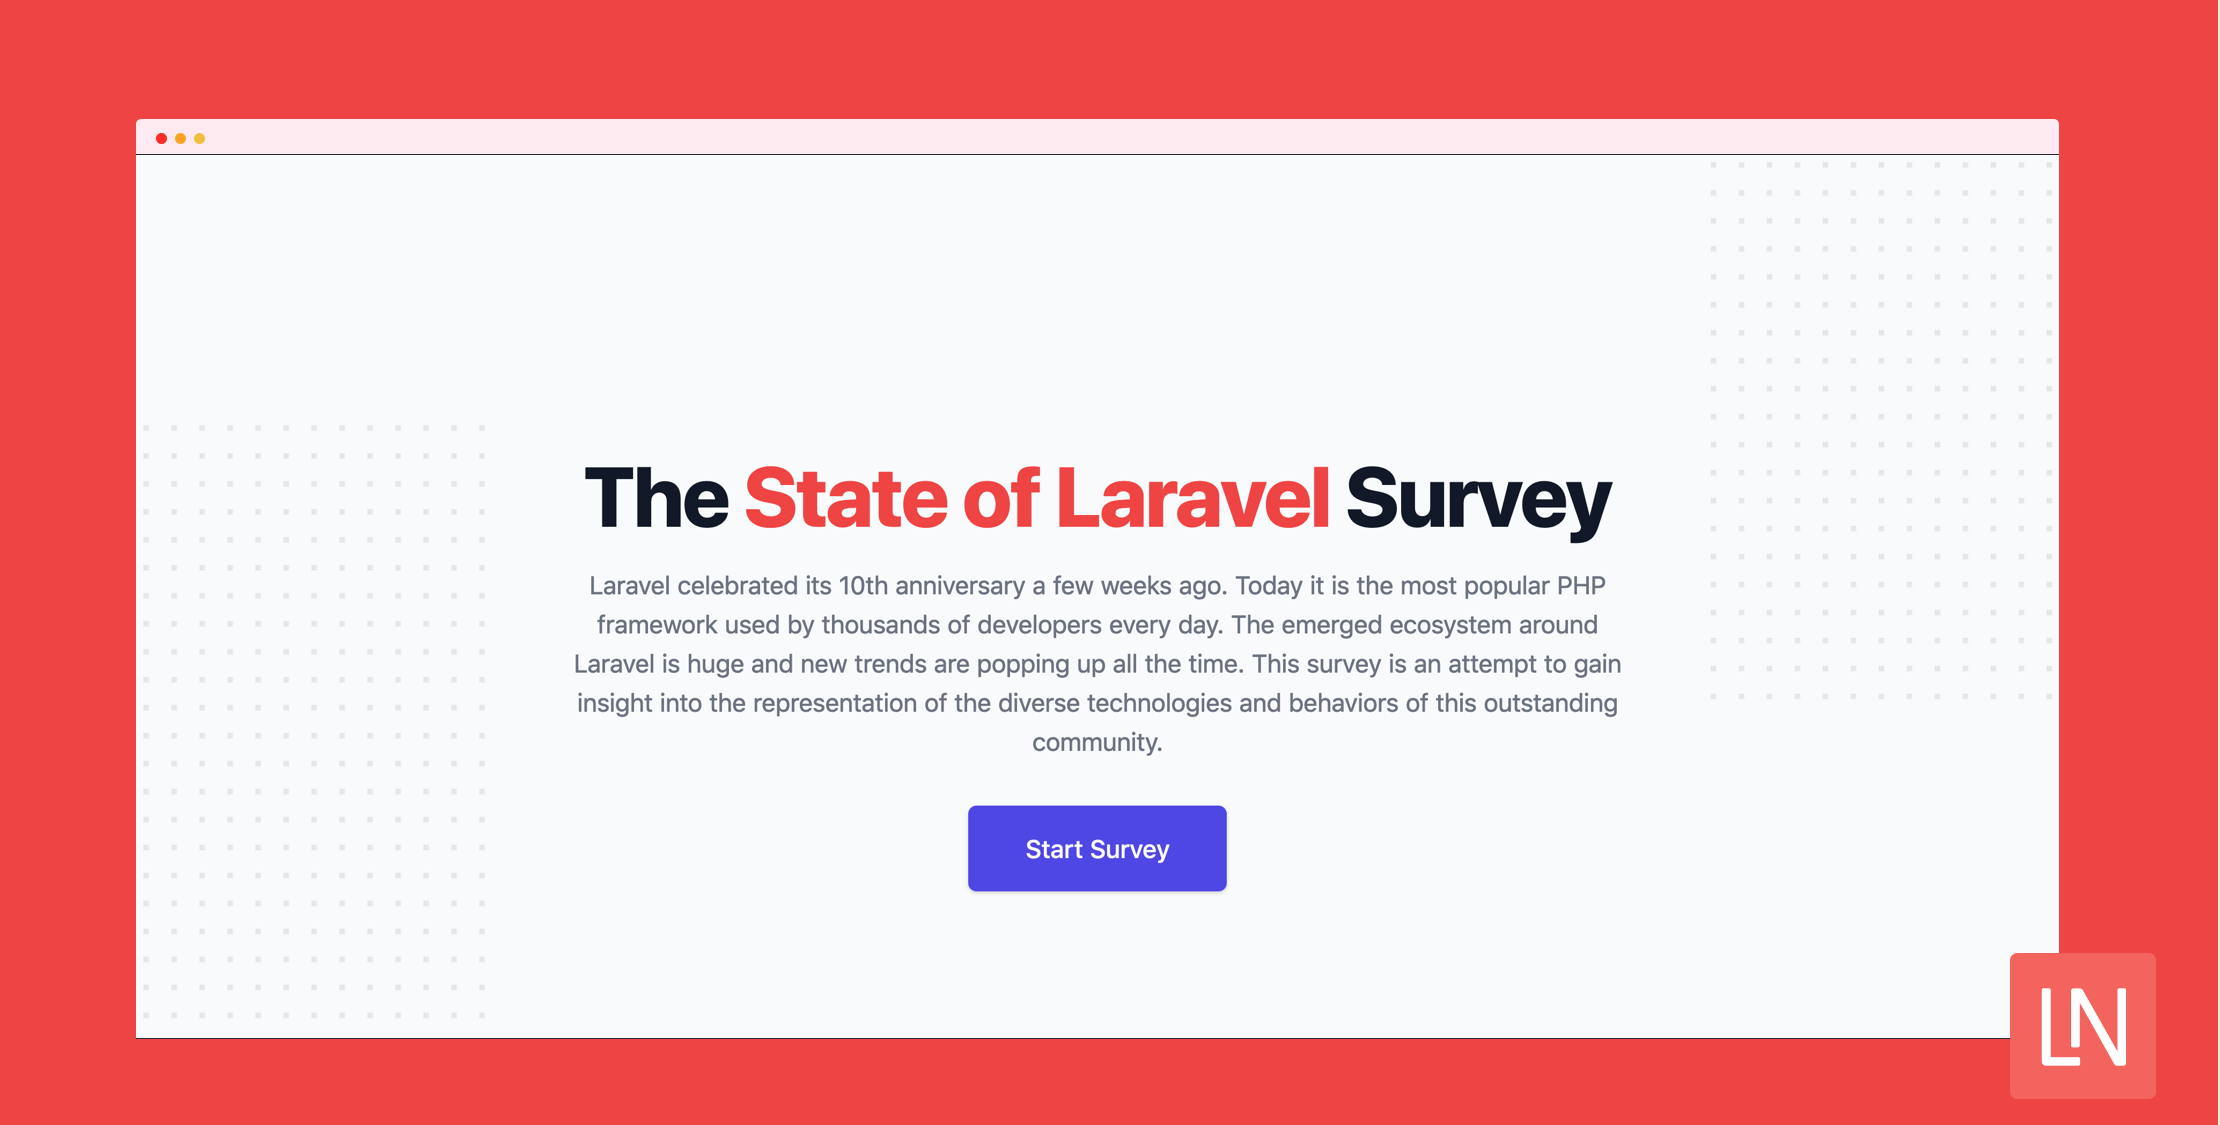 state-of-laravel-featured.png